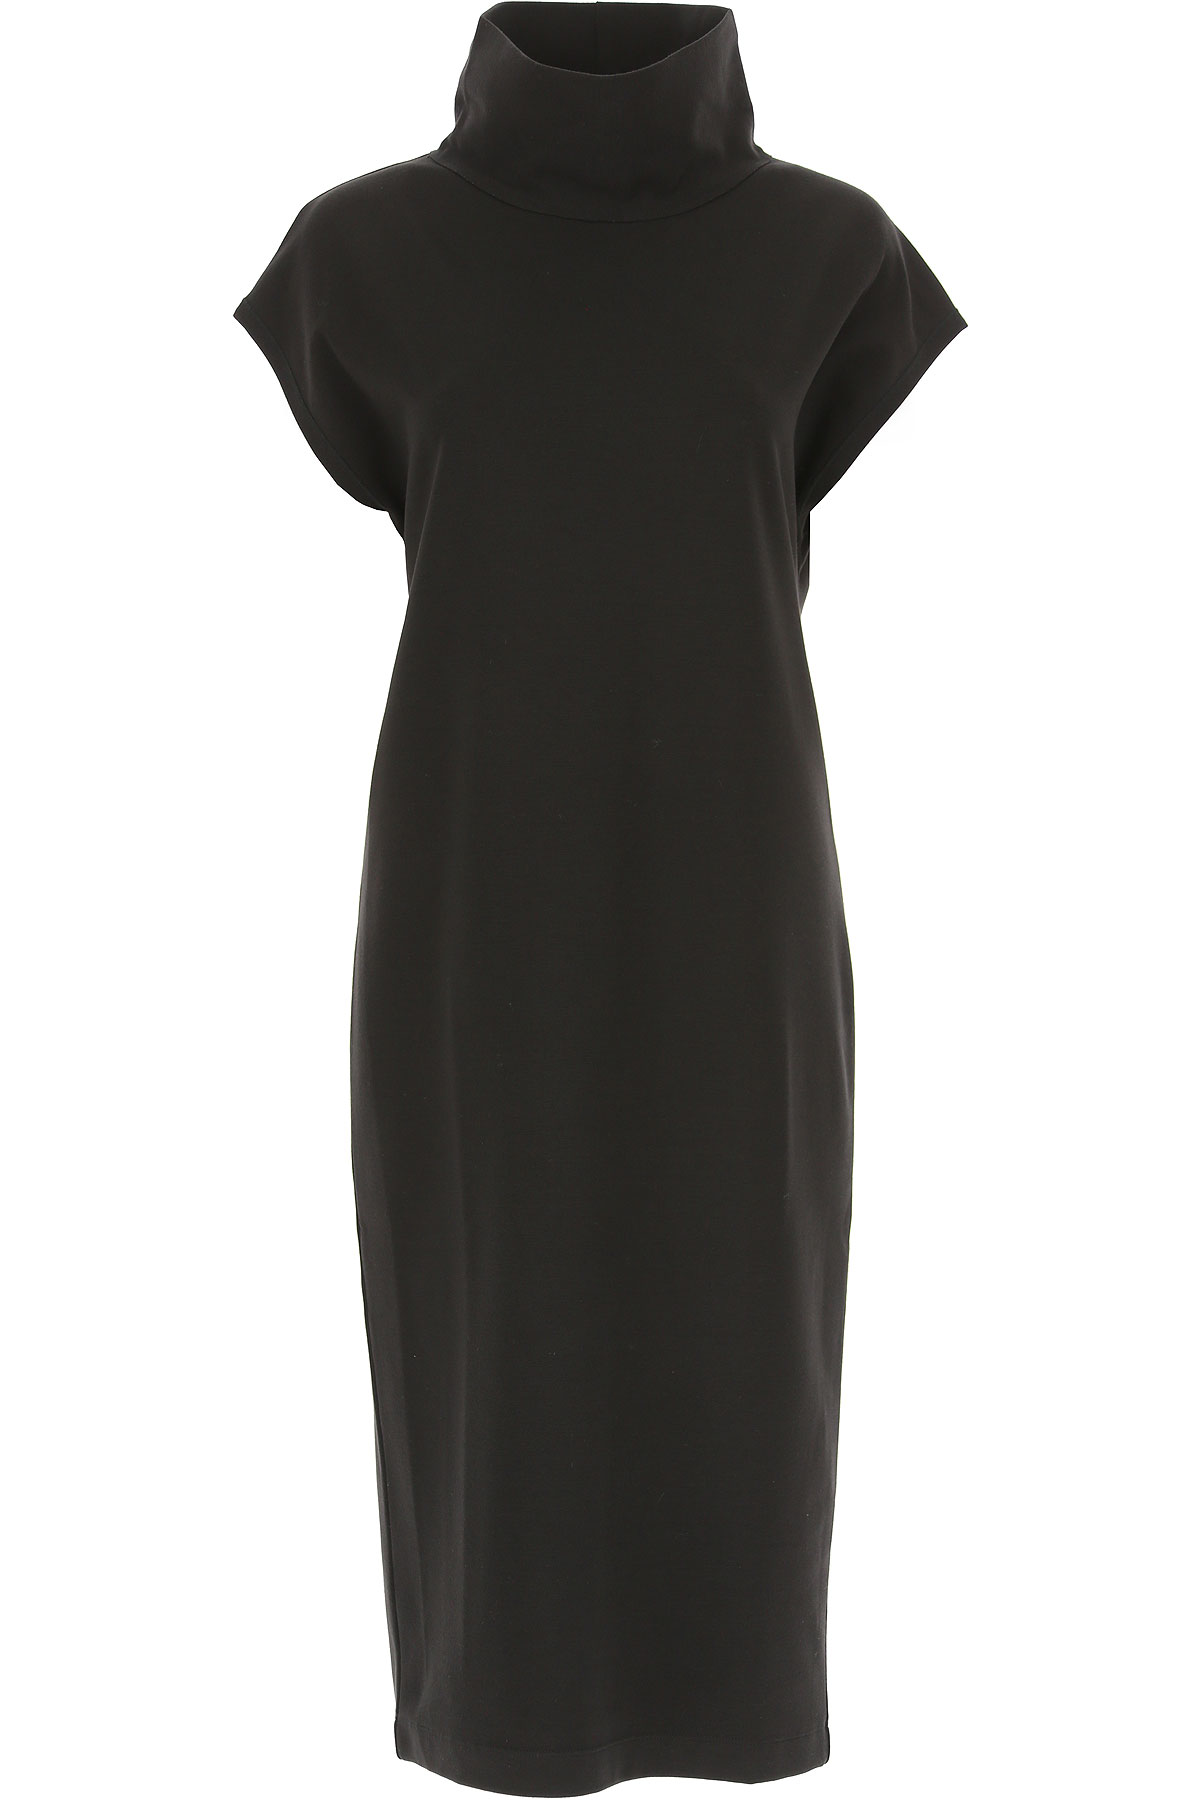 Image of Fuzzi Dress for Women, Evening Cocktail Party, Black, Viscose, 2017, 4 6 8